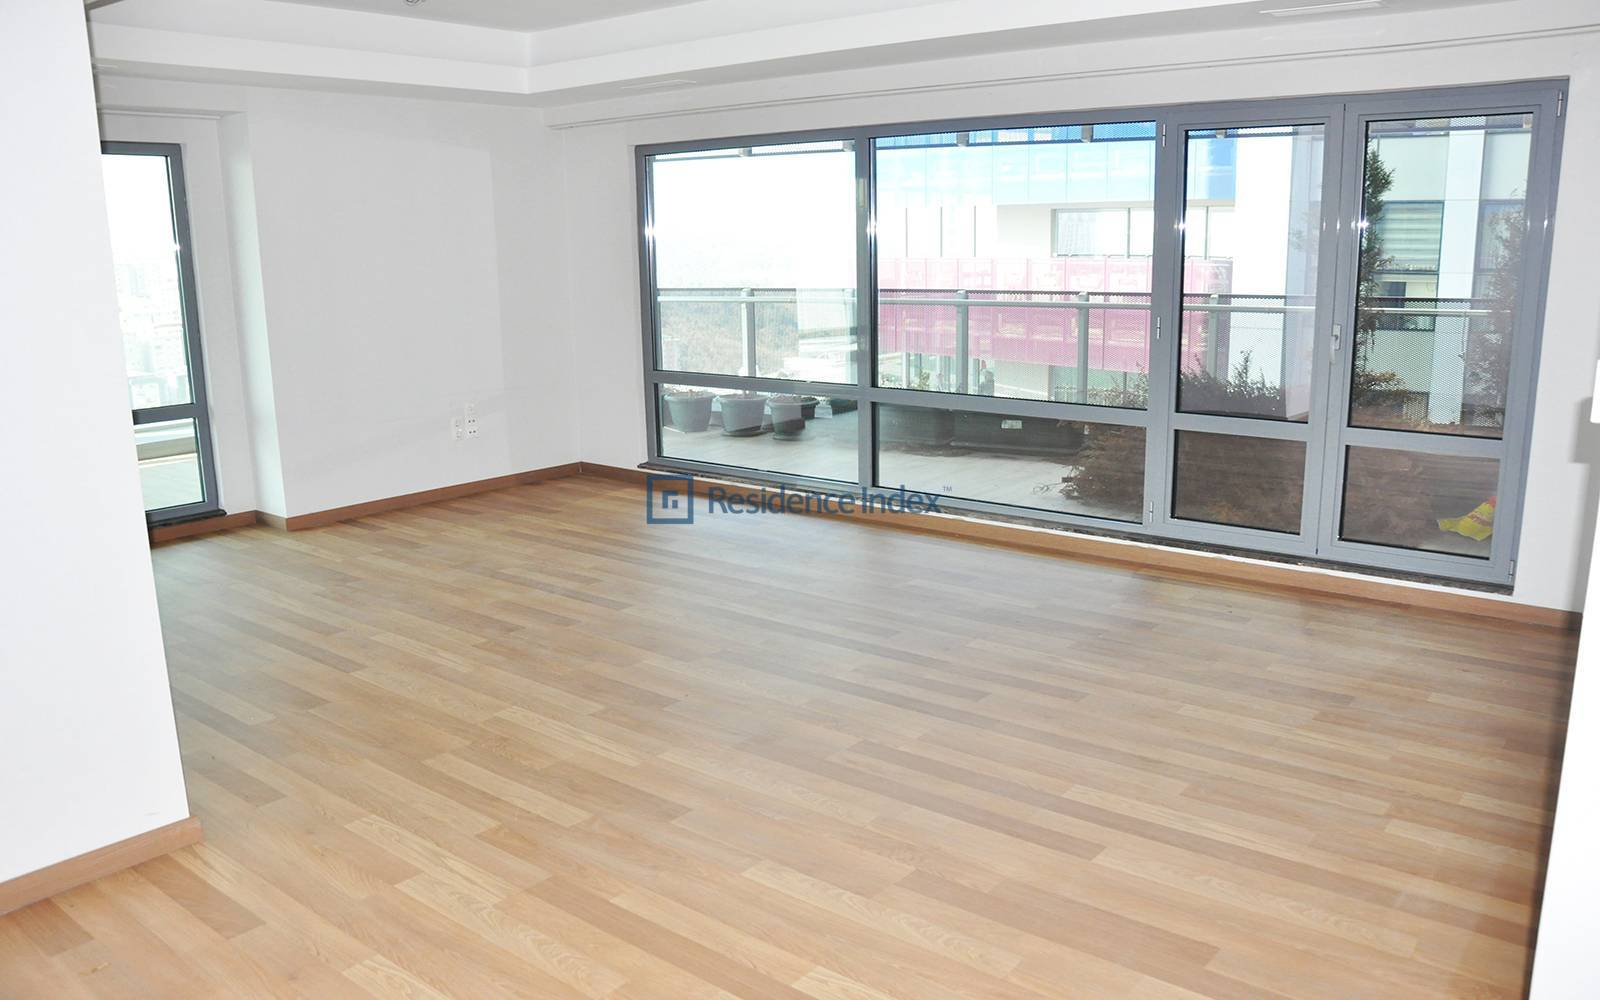 1453 Maslak - 3+1 Flat for Sale in Excellent Location